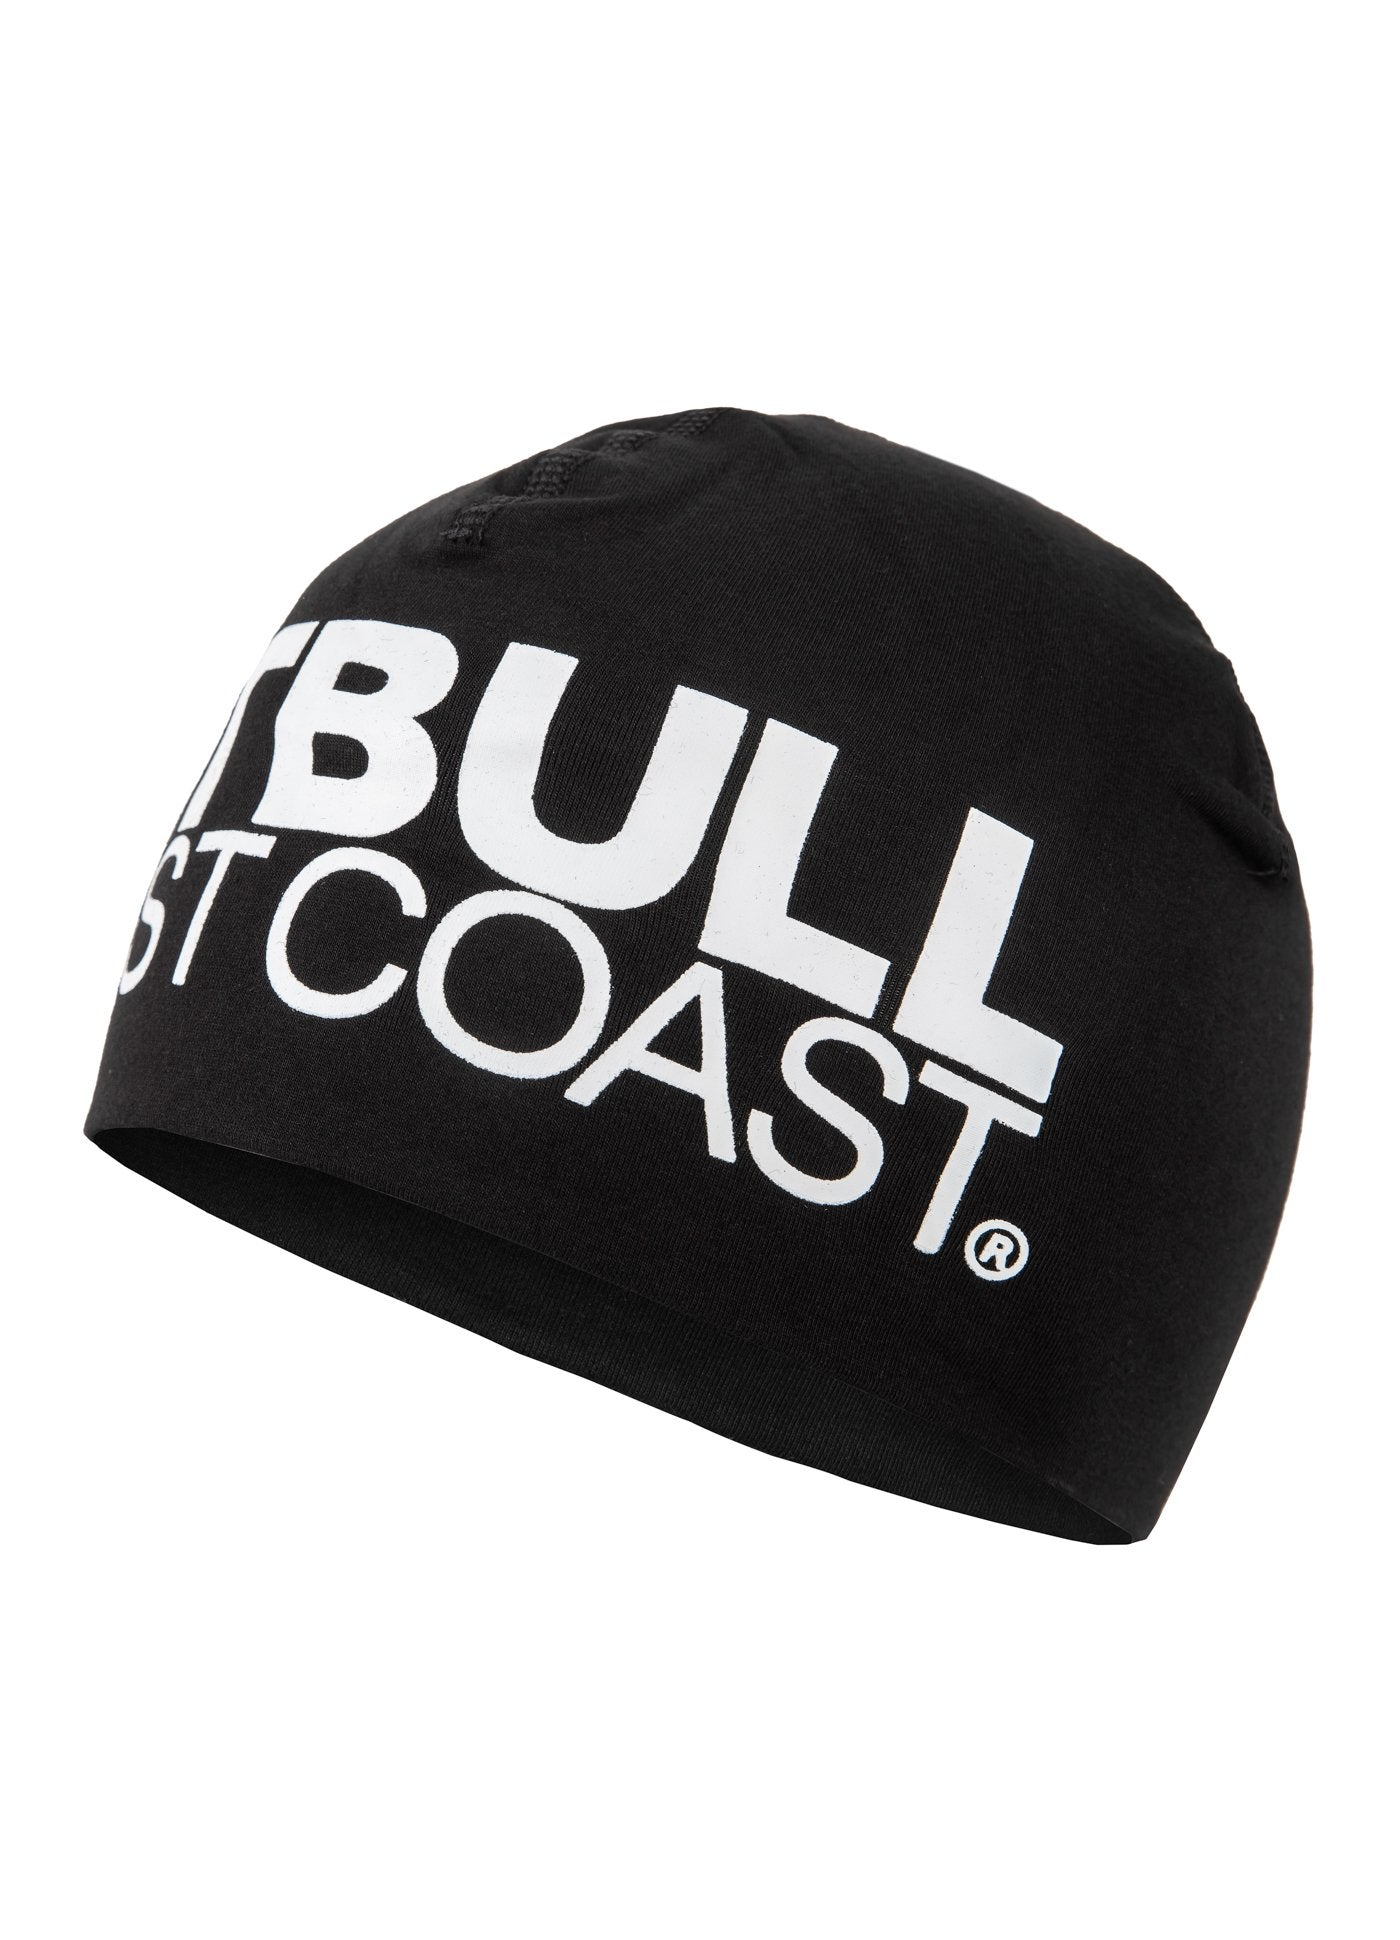 Compression Beanie TNT Black - Pitbull West Coast U.S.A.